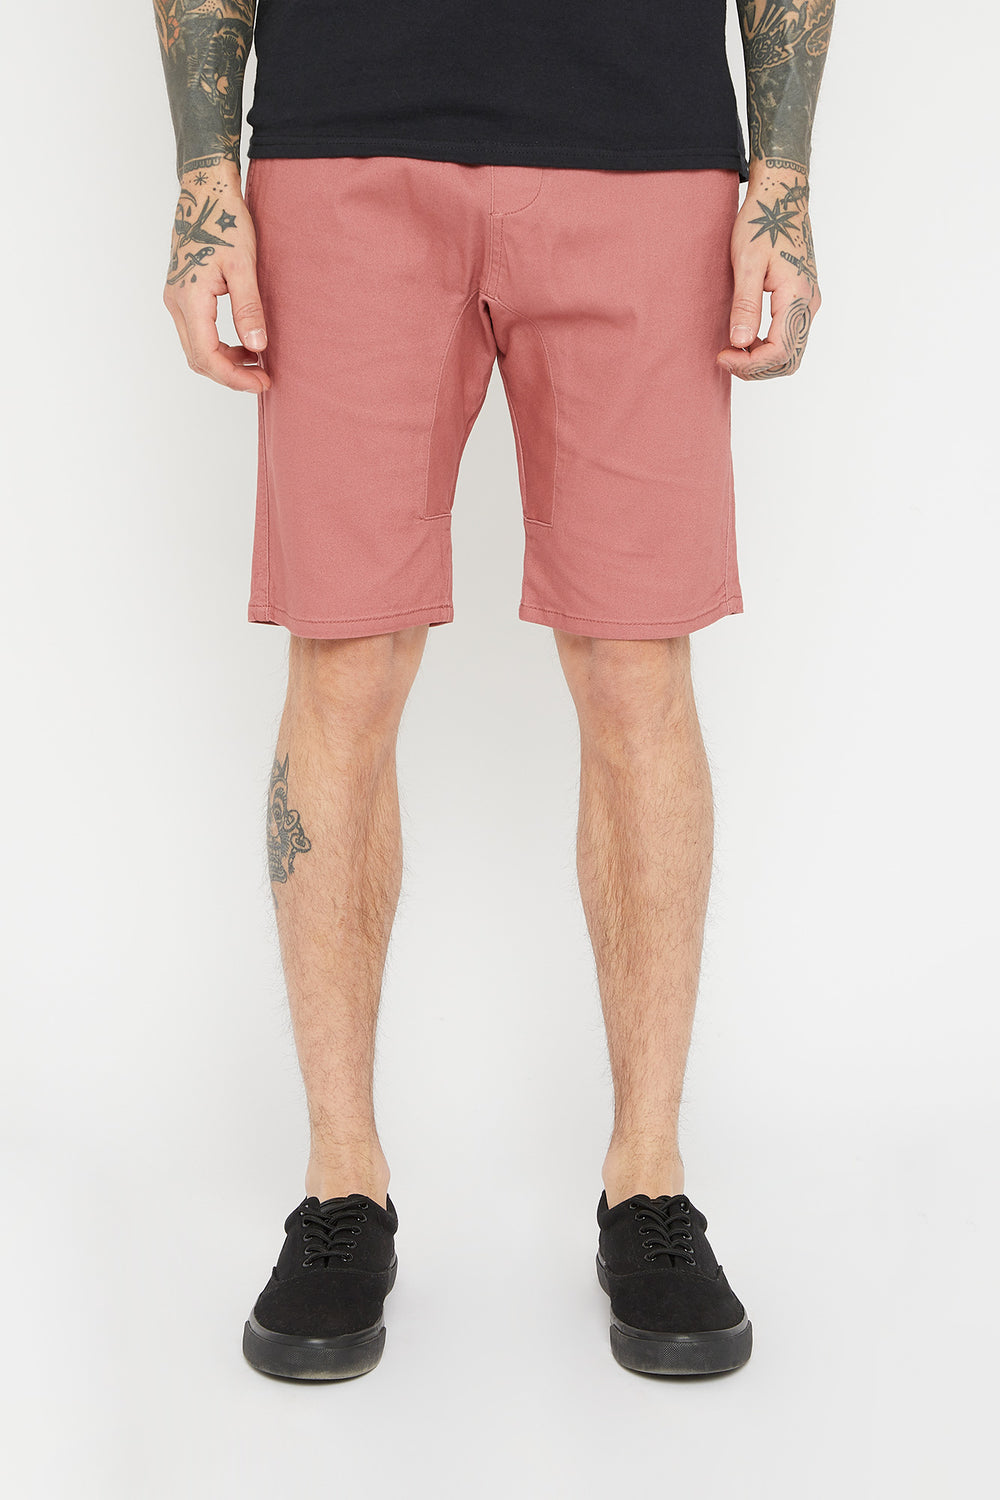 West49 Mens Solid Twill Jogger Short Dark Pink